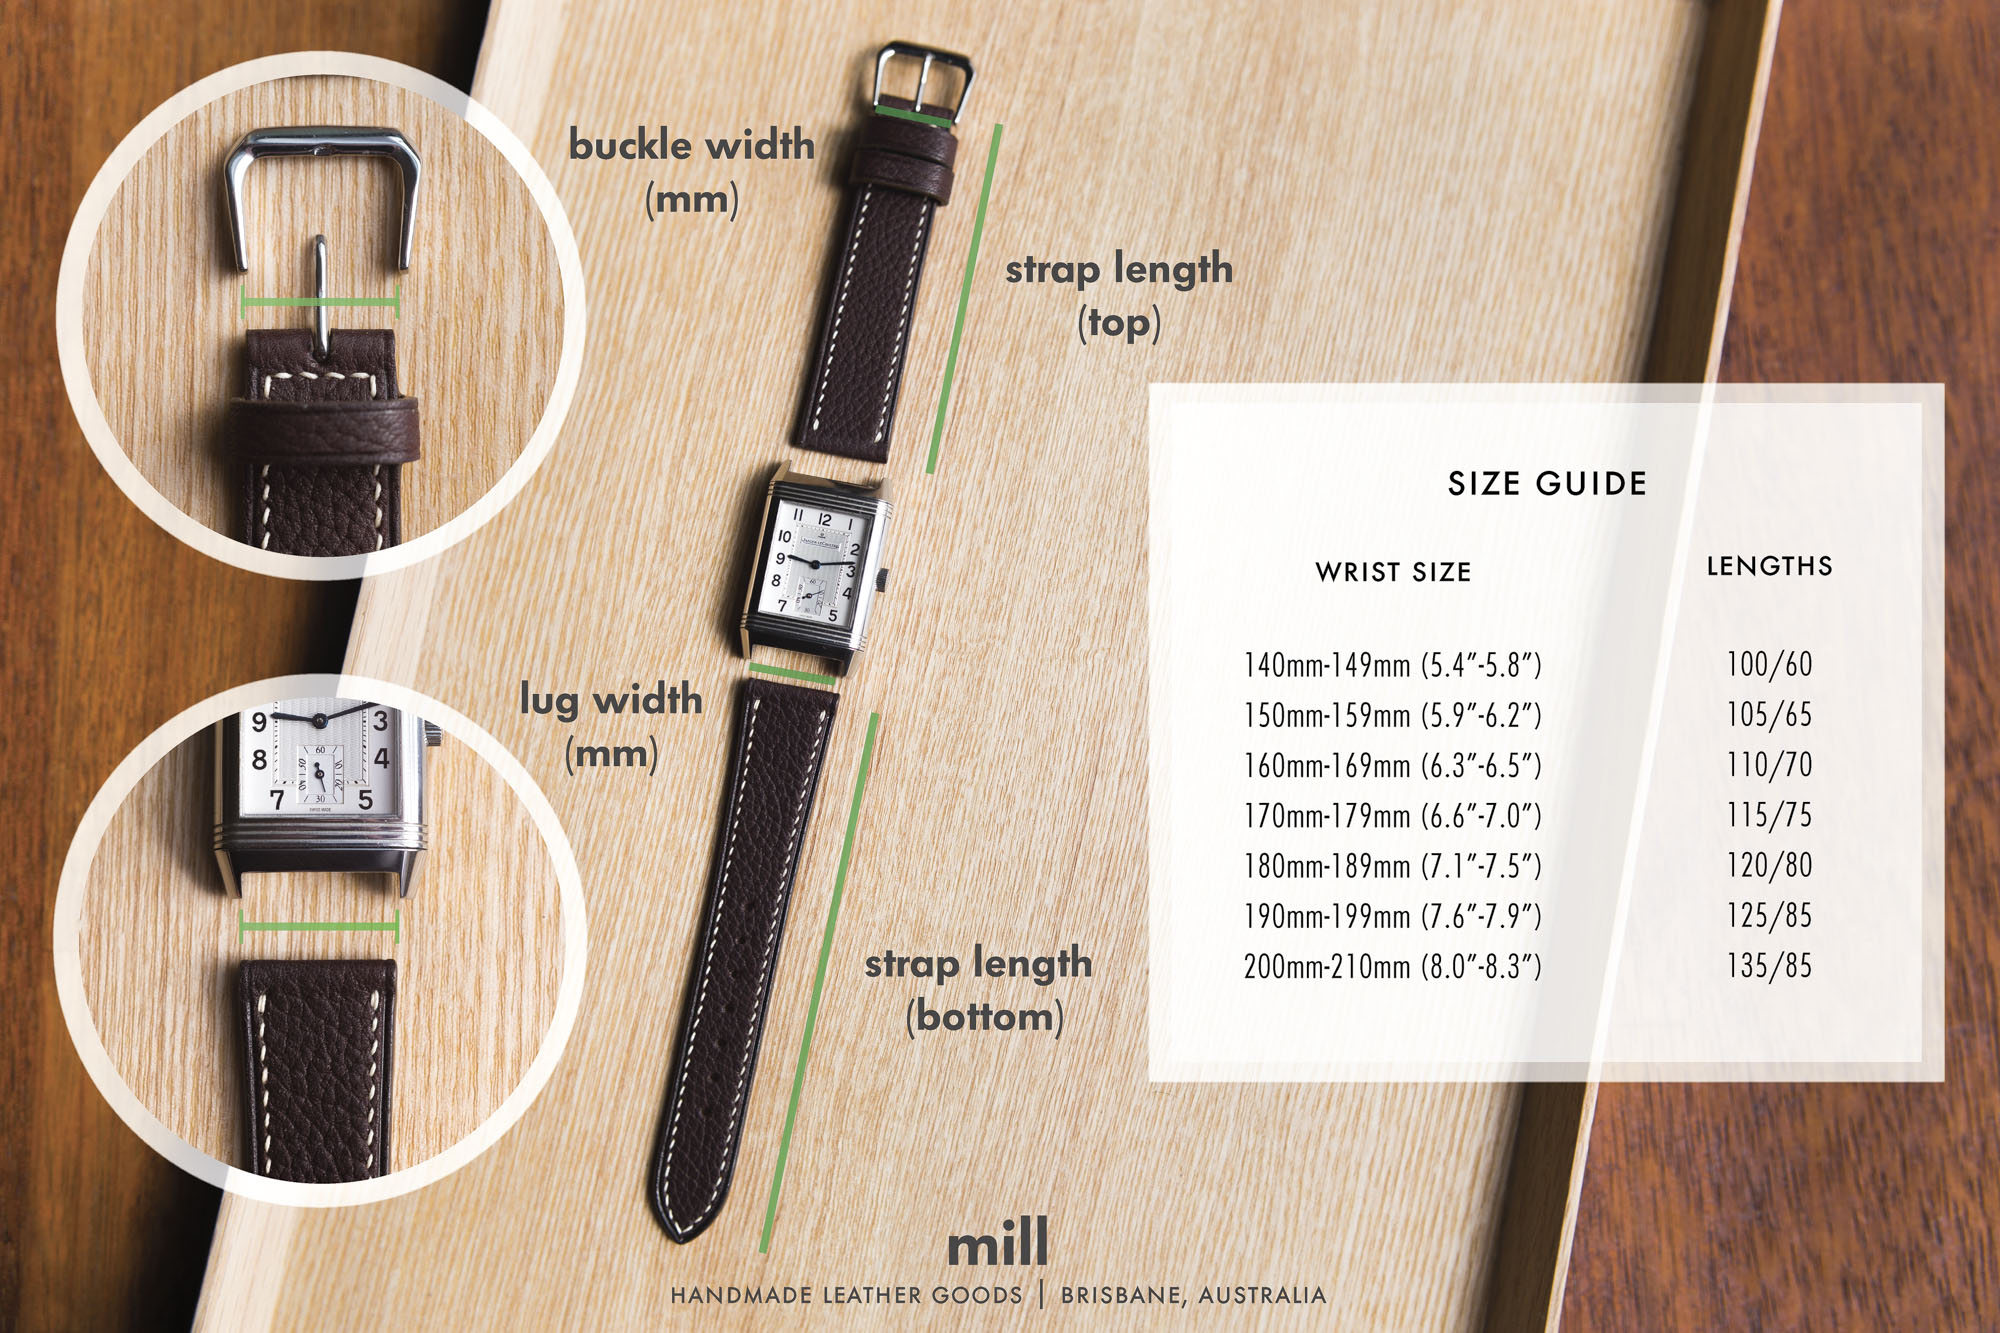 Sizing guide.